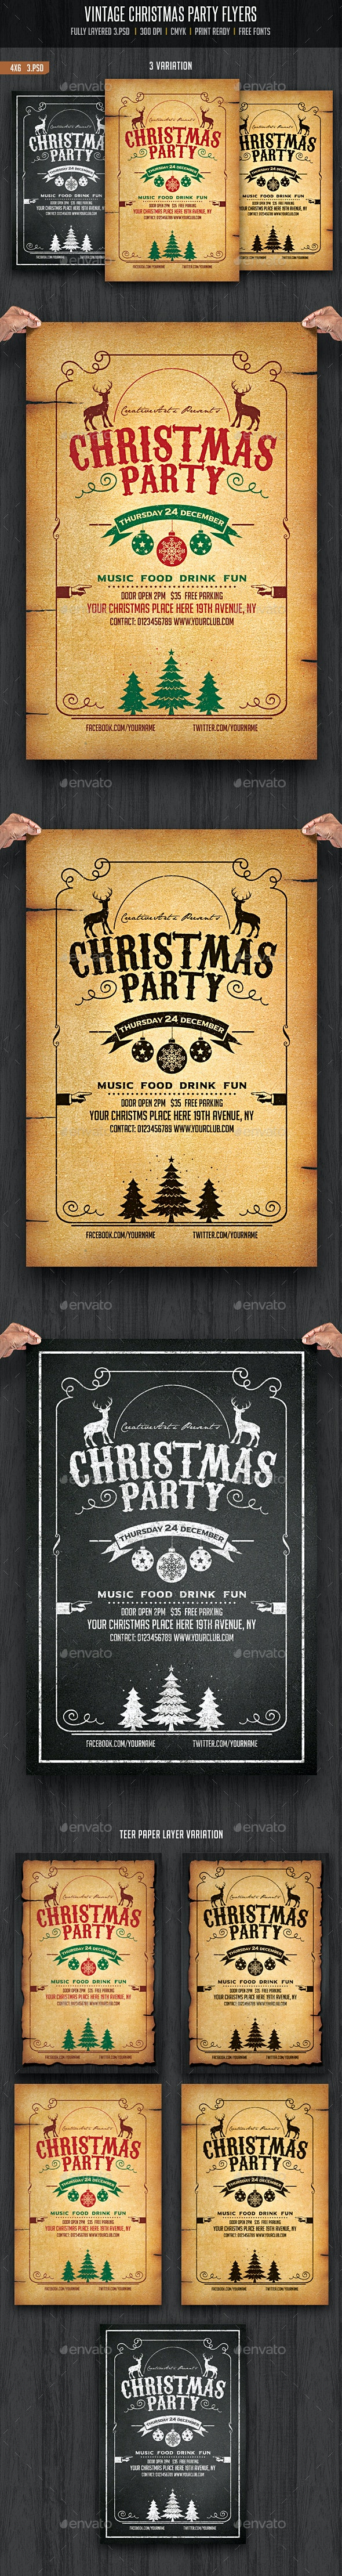 Vintage and Chalkboard Christmas Party Flyer - Events Flyers